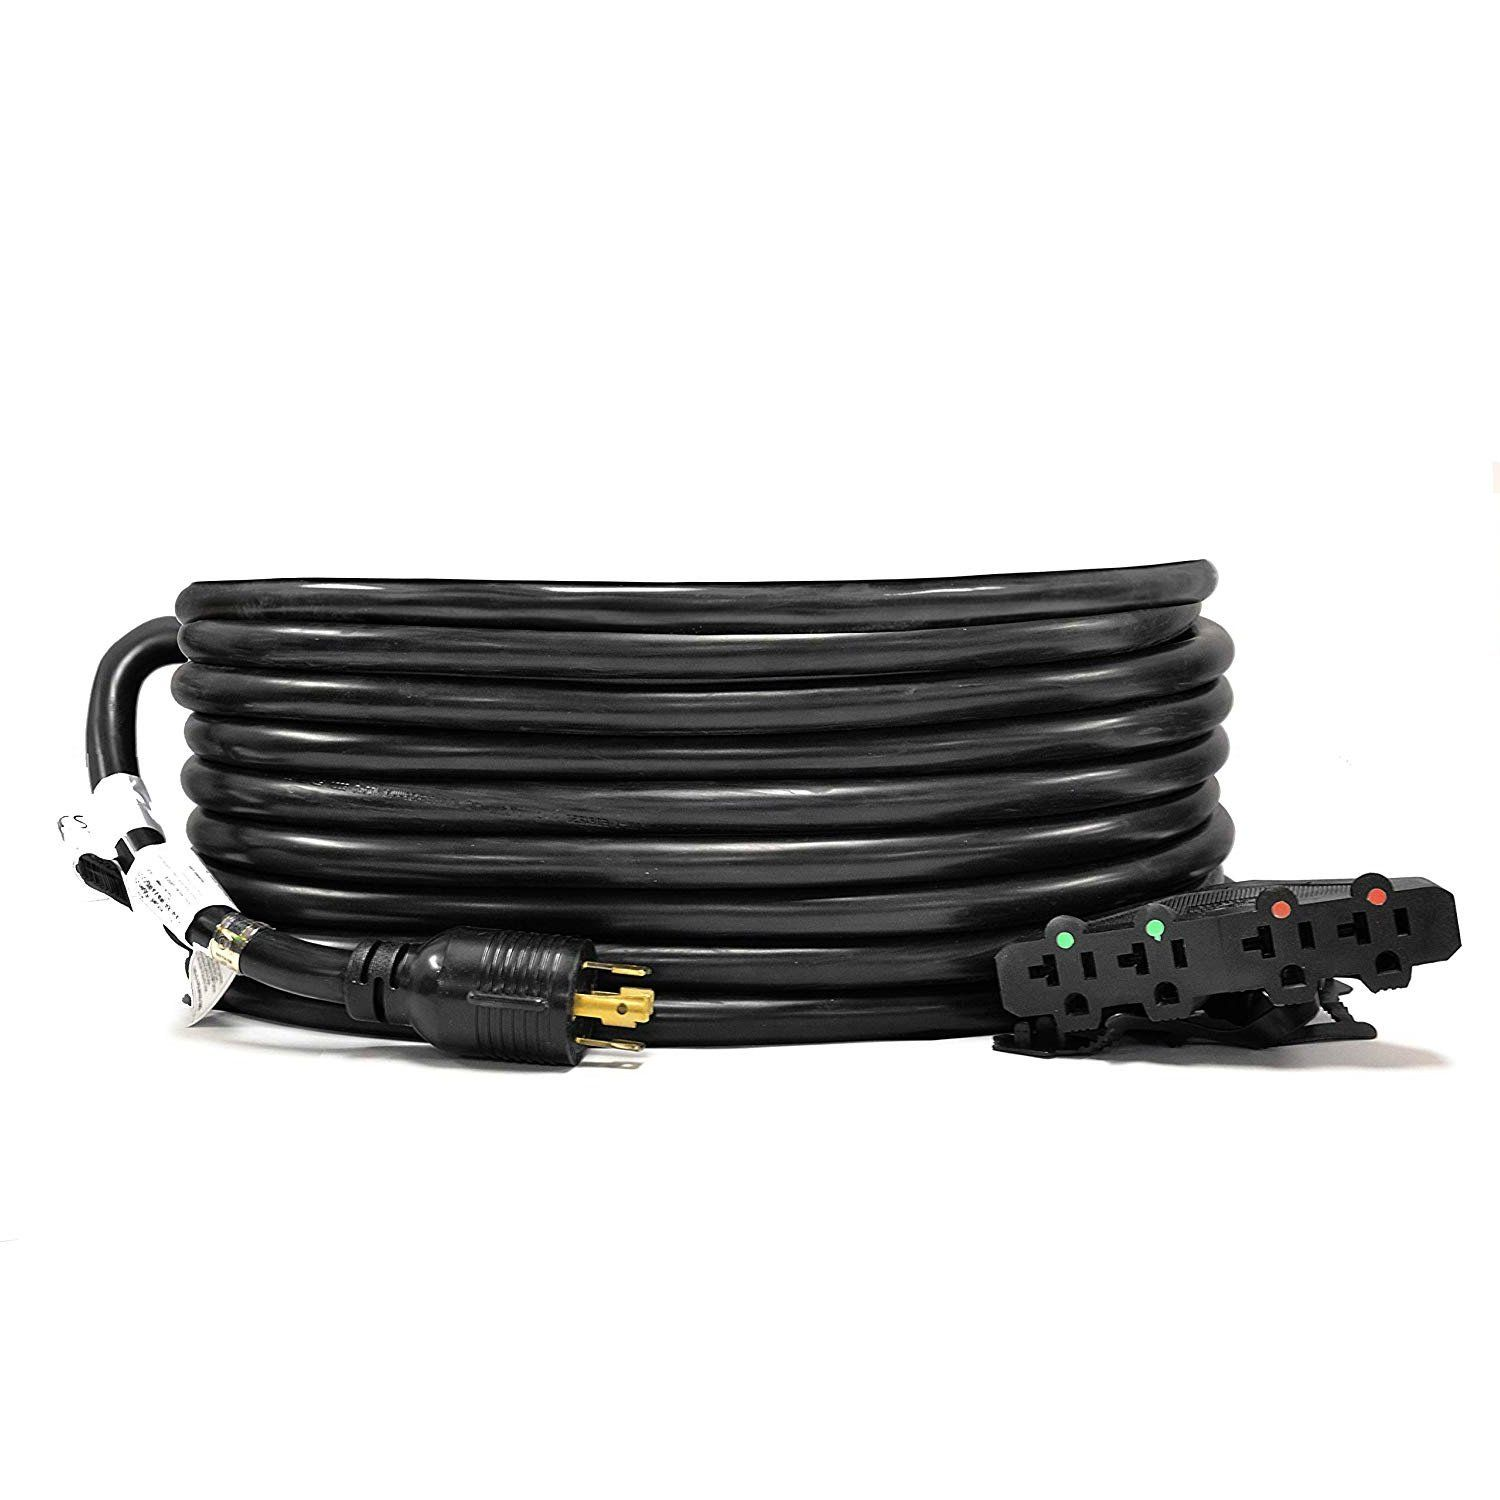 20 Ft 20 Amp Generator Distribution Power Cord L14 20 To 4x 5 15 20r Power Cord Generation Cord